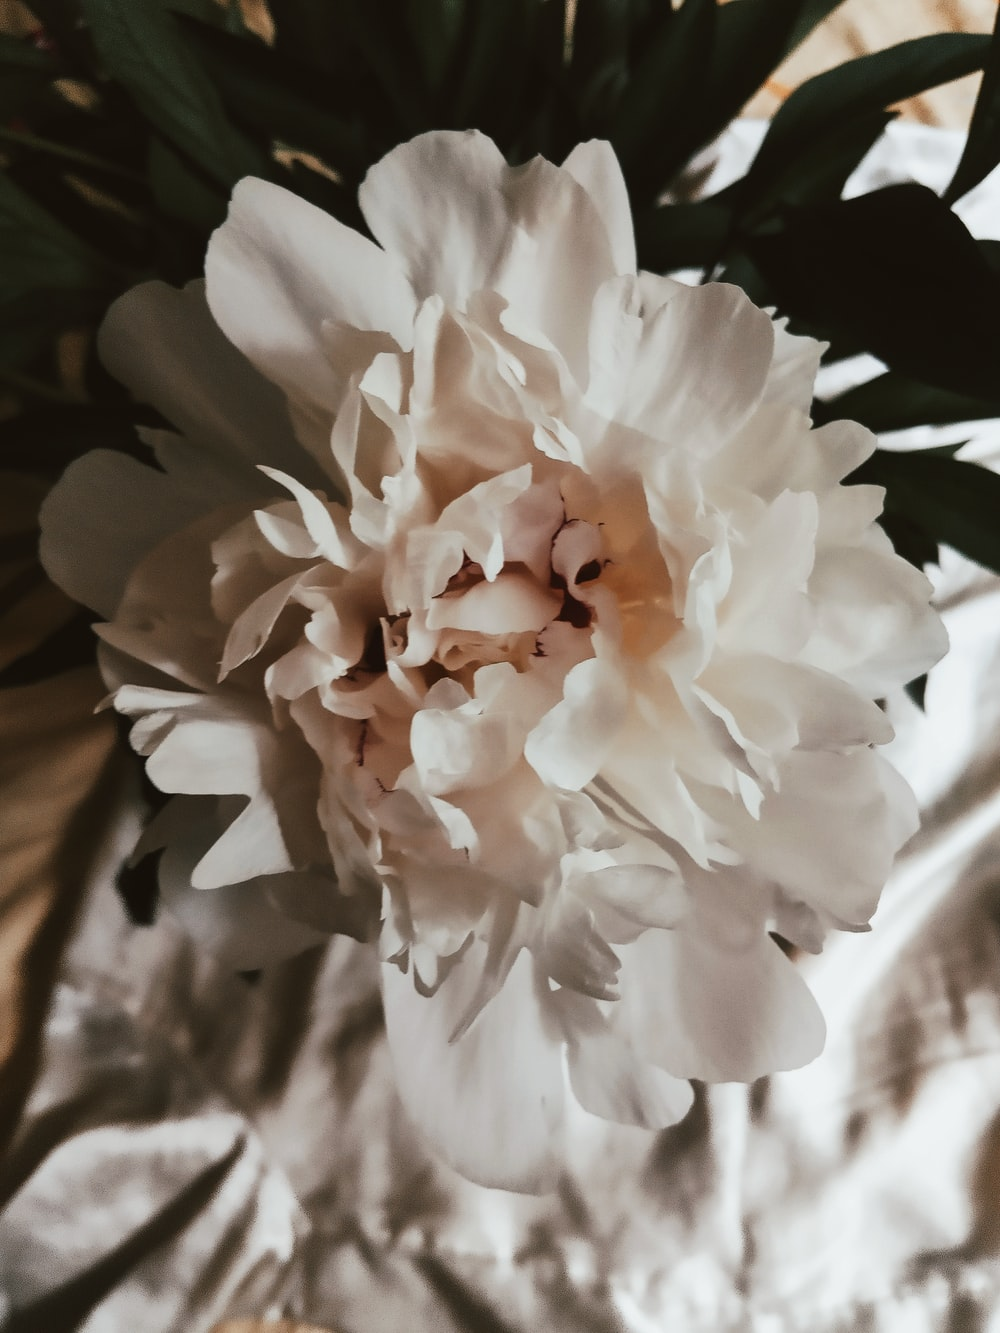 white and orange flower in close up photography